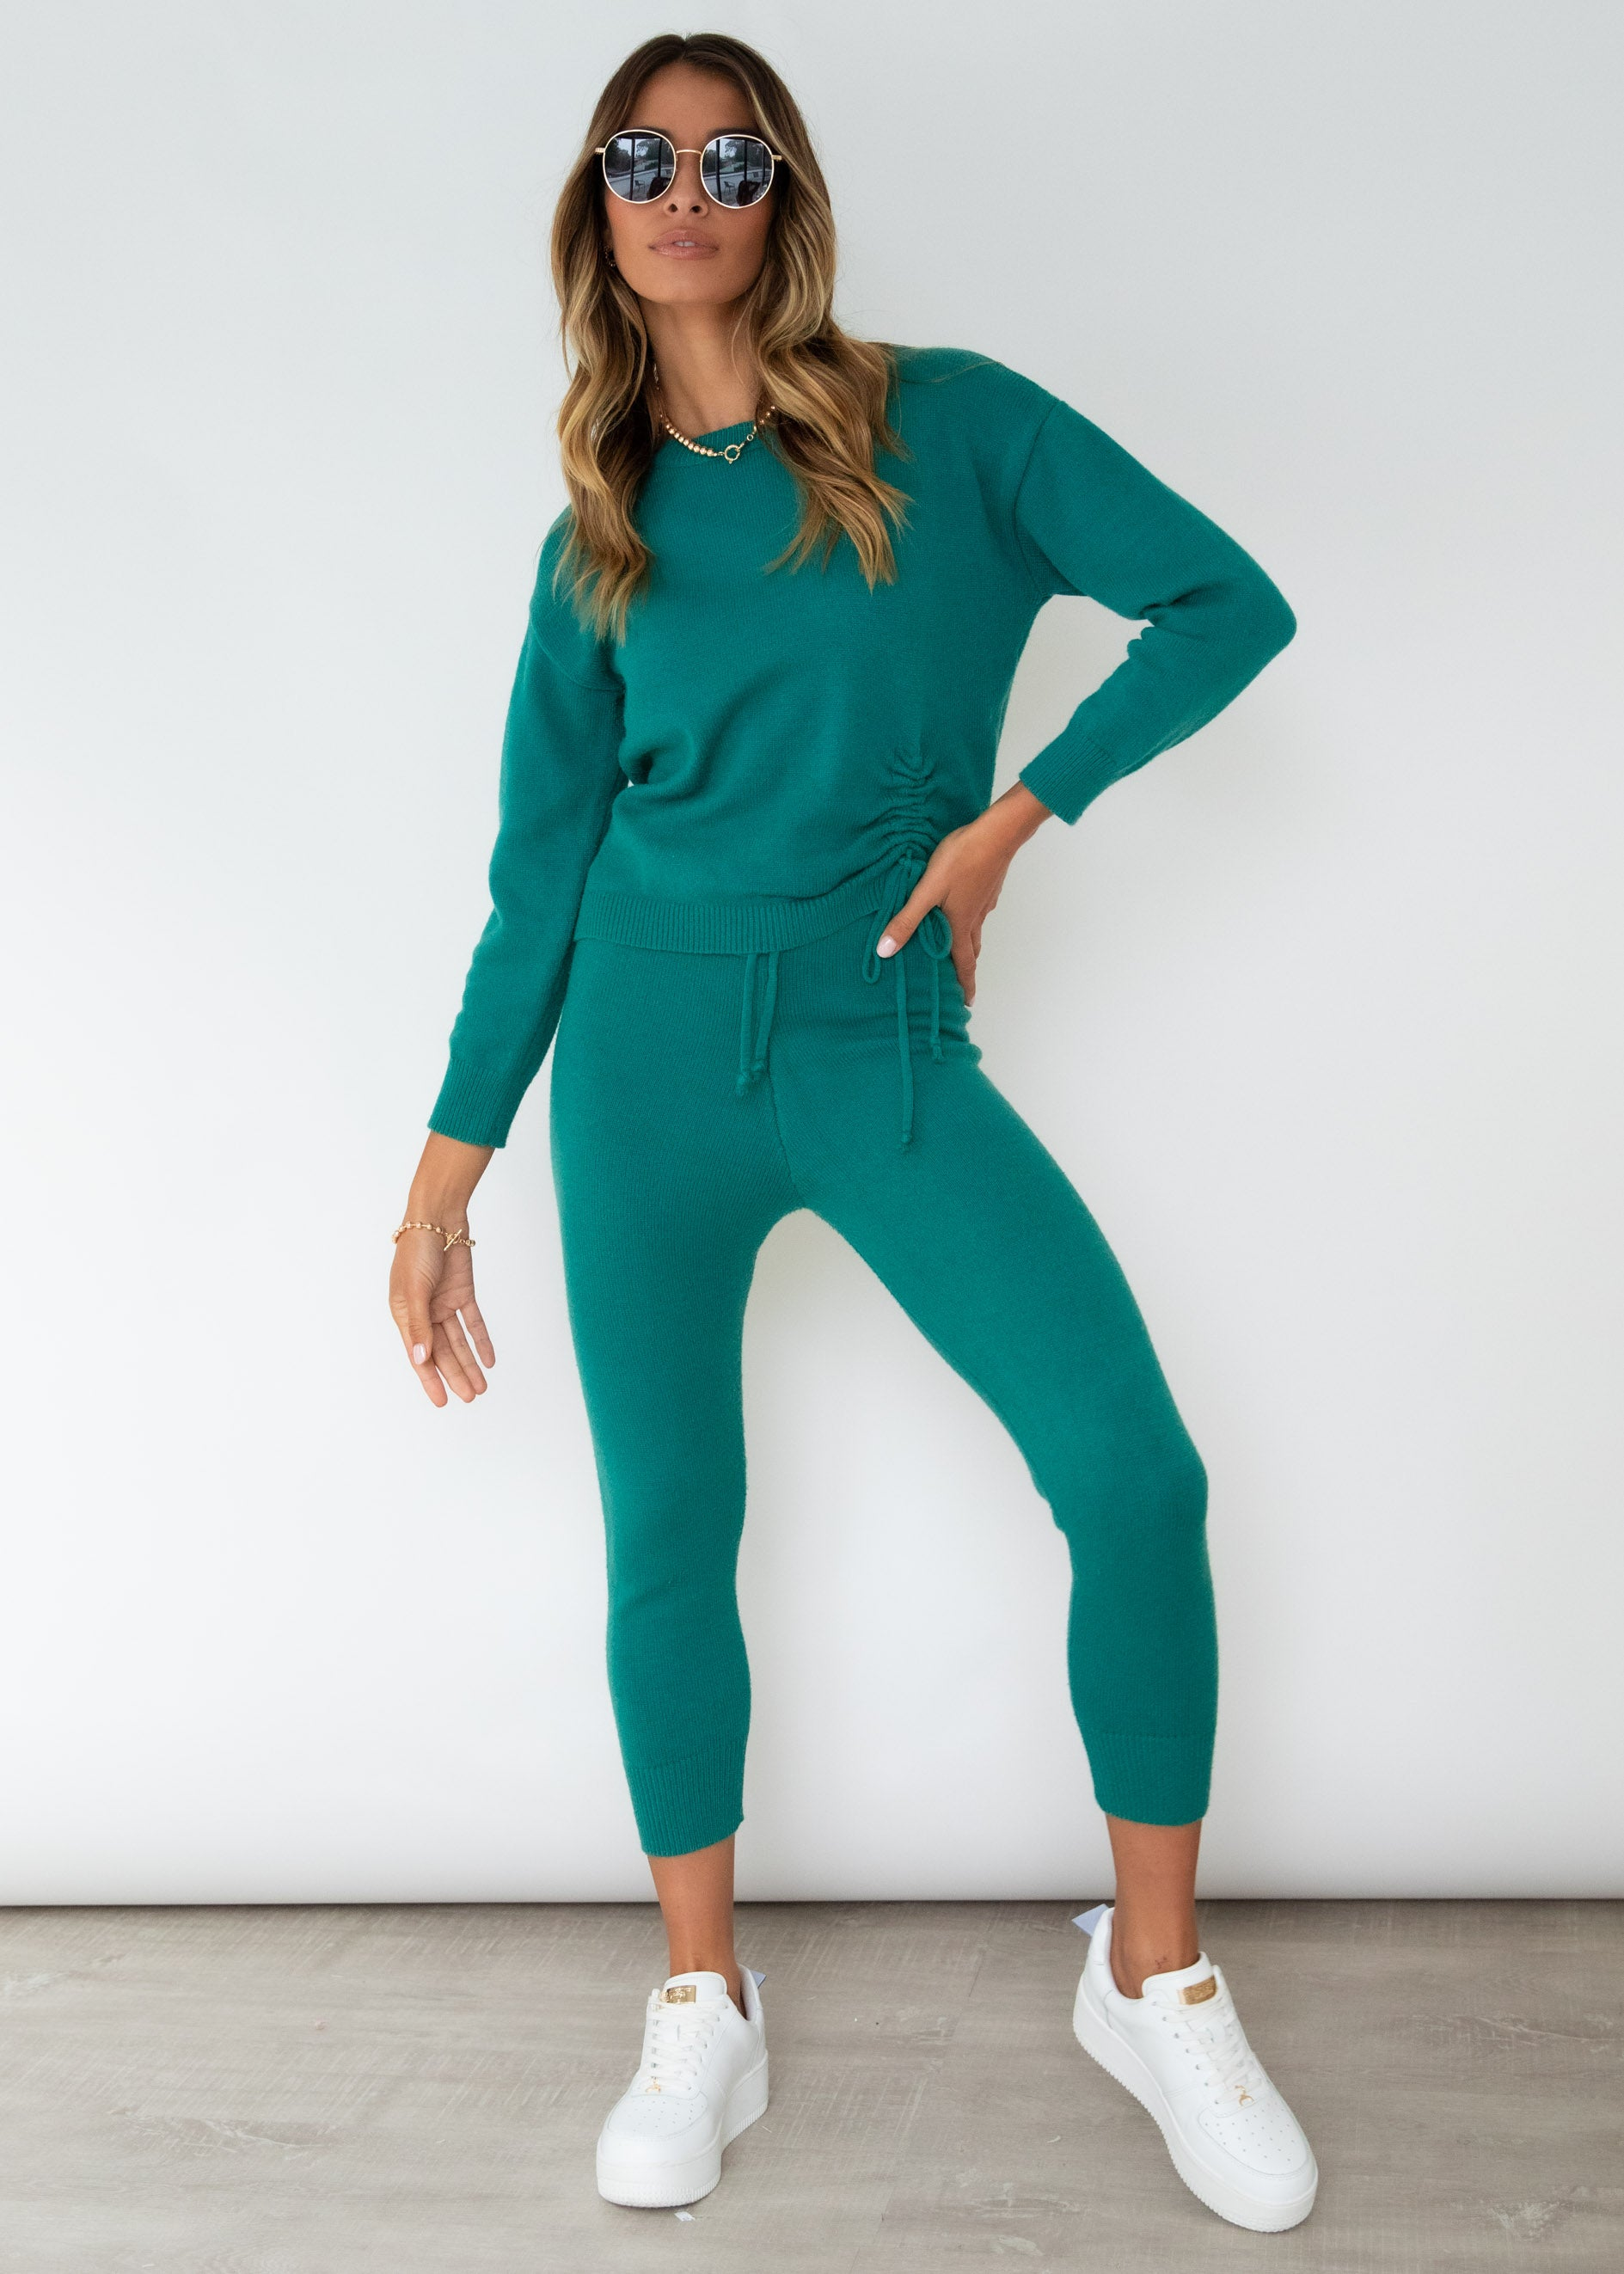 Bobbi Knit Set - Emerald